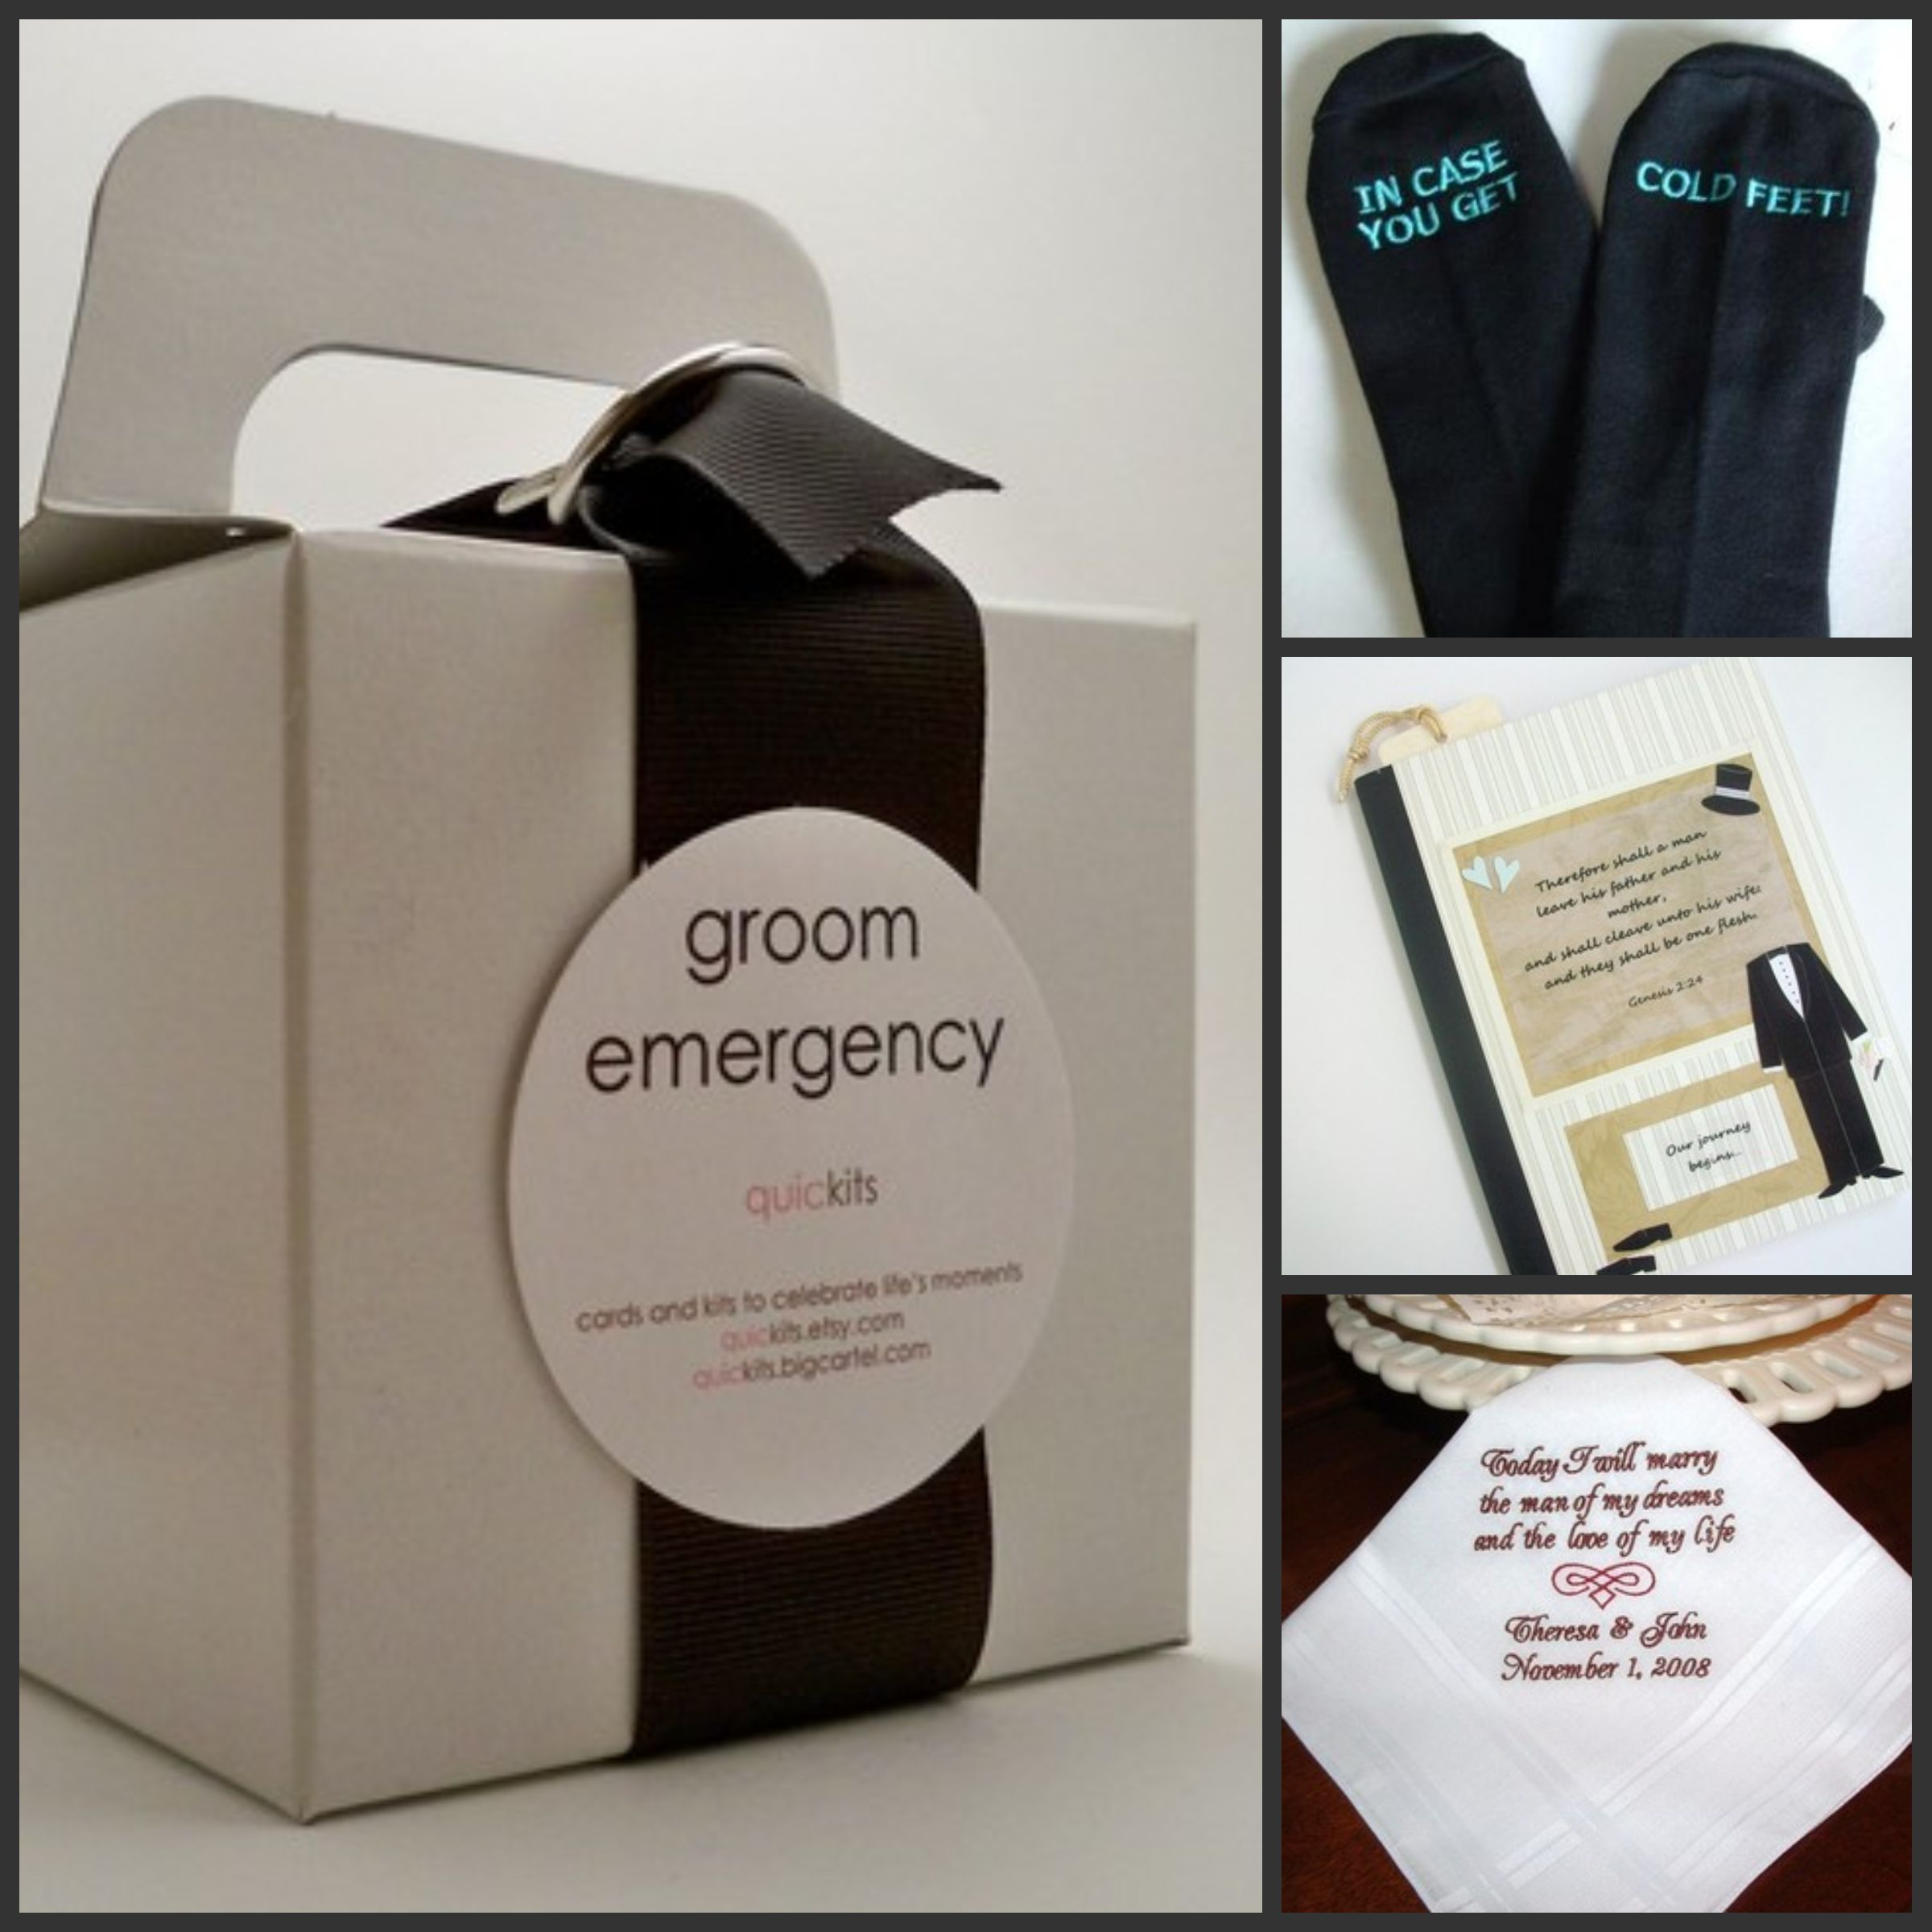 Personal gifts for your groom (clockwise from left) Groom